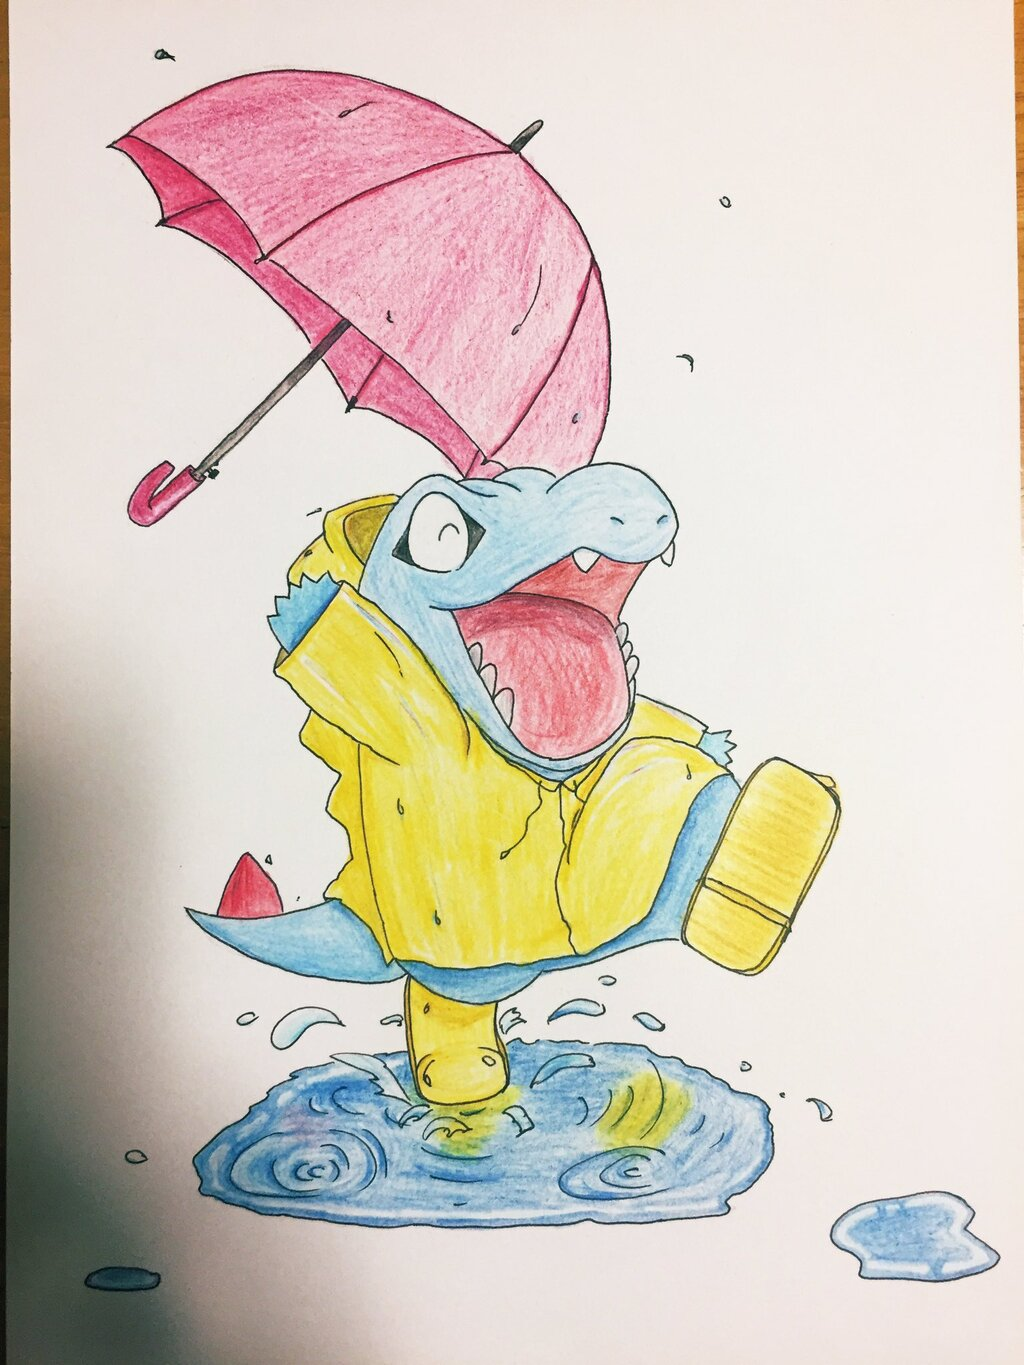 Most recent image: Totodile's Welly Dance